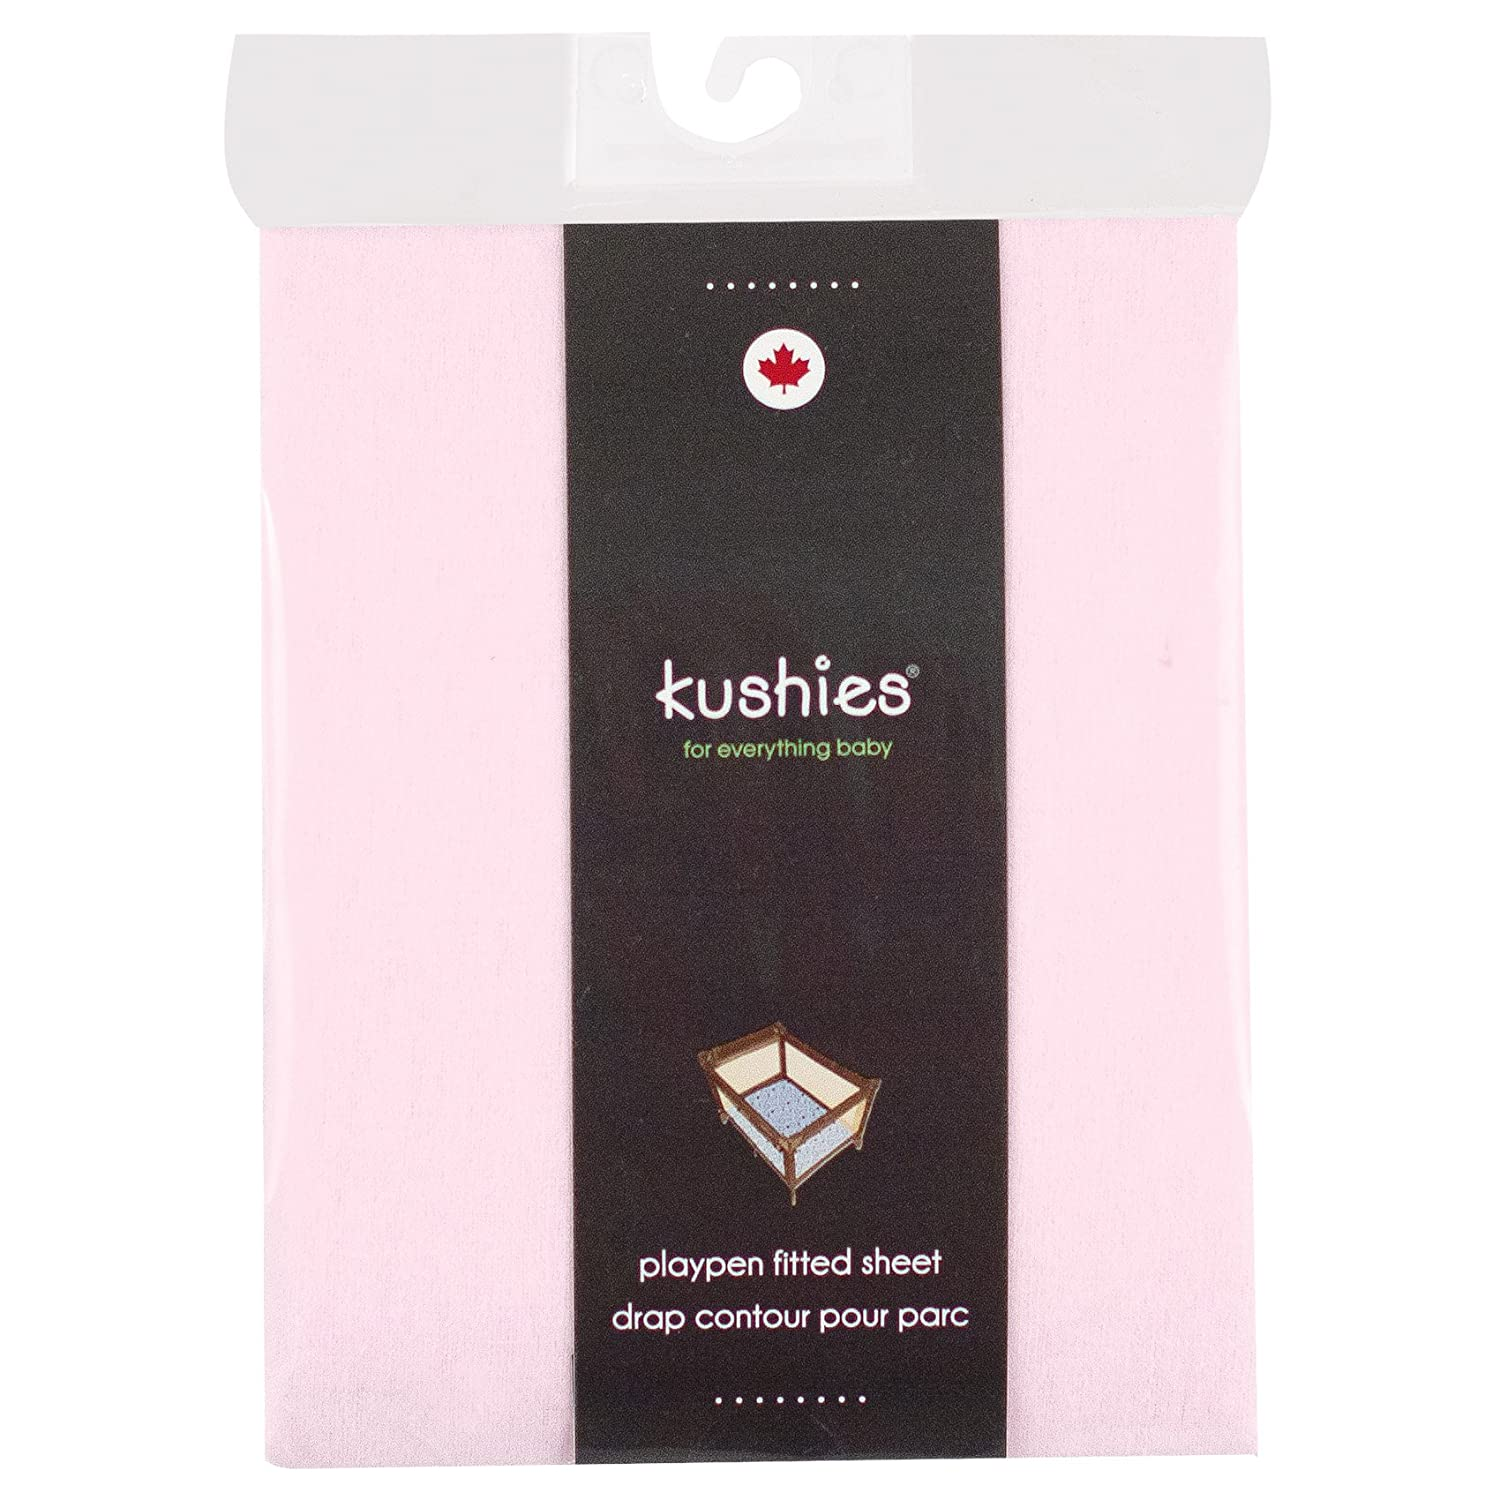 Kushies Pack N Play Playard Sheet, Soft 100% breathable cotton flannel, Made in Canada, Natural S345-NAT